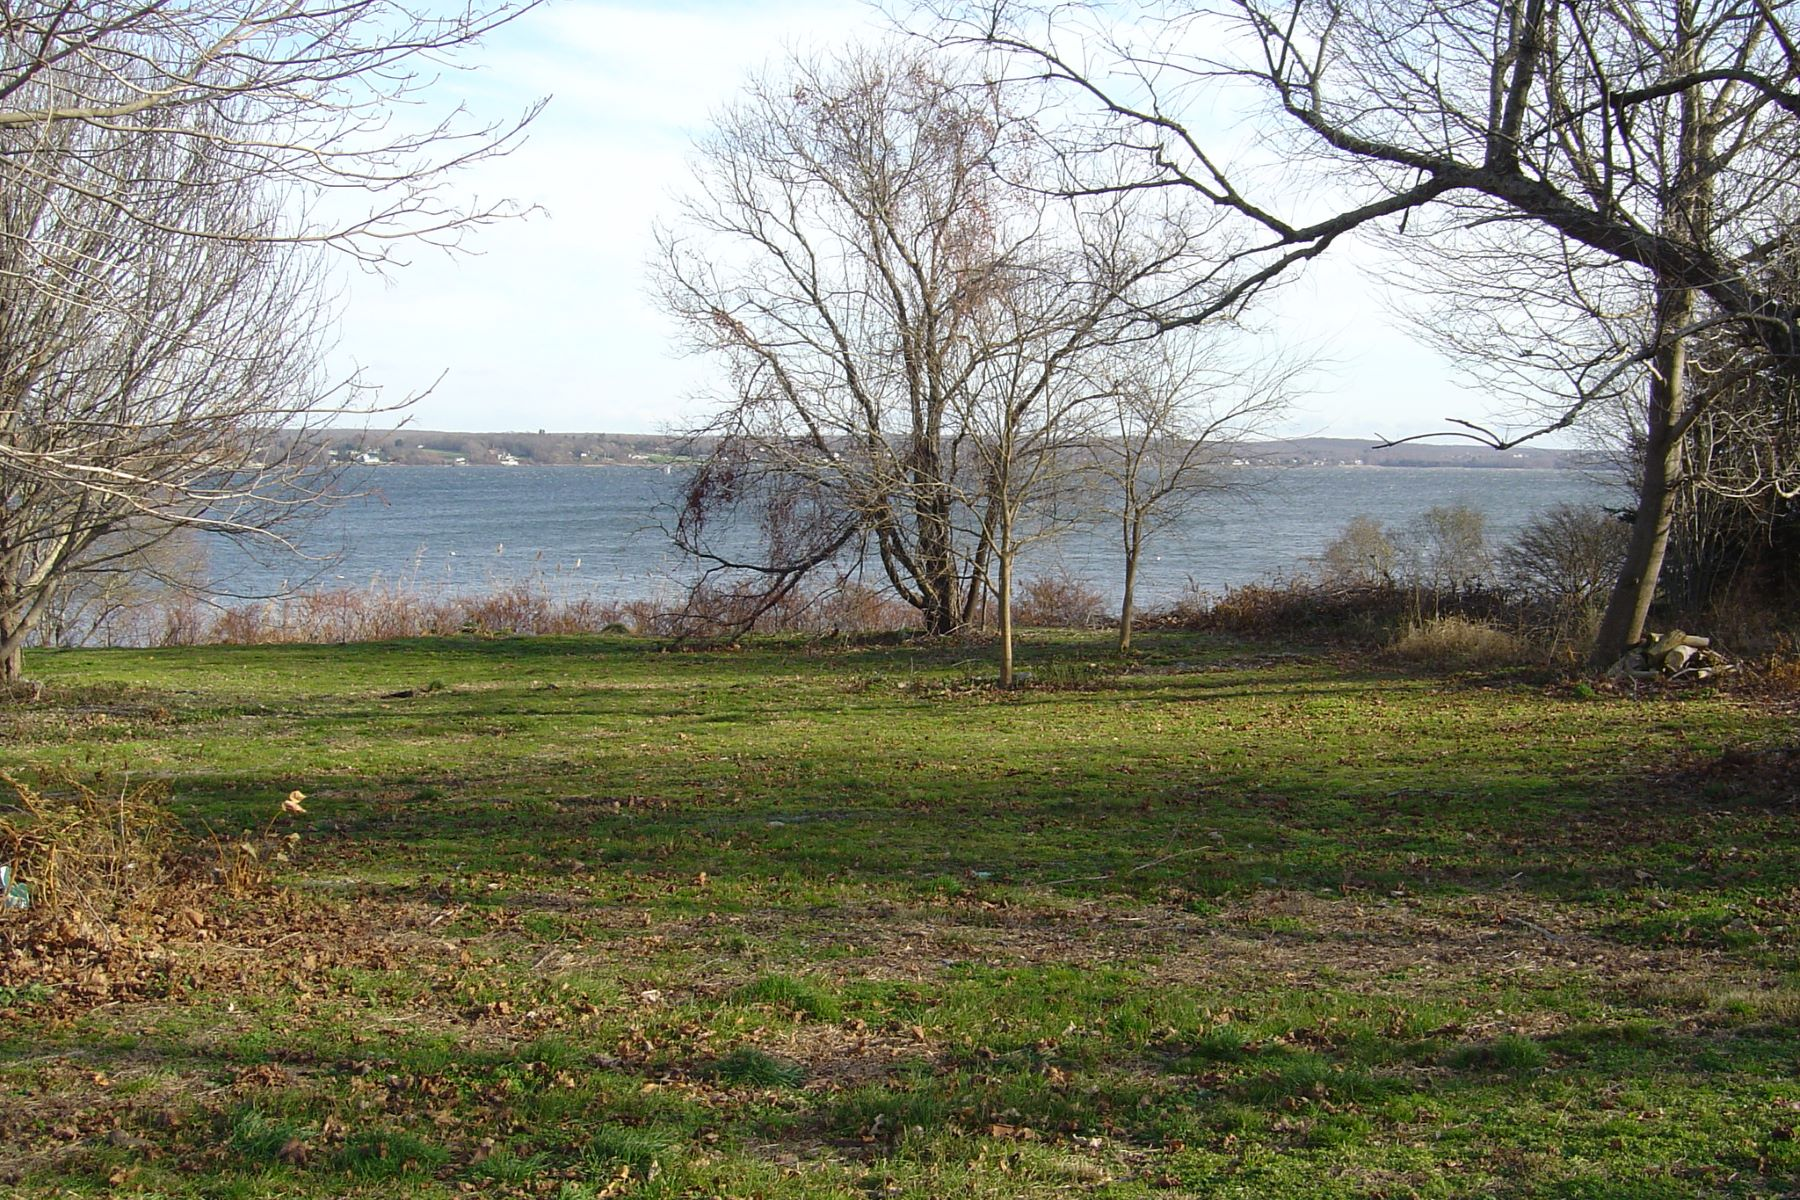 Land for Sale at Sakonnet Waterfront 1 East Corys Lane, Portsmouth, Rhode Island, 02871 United States